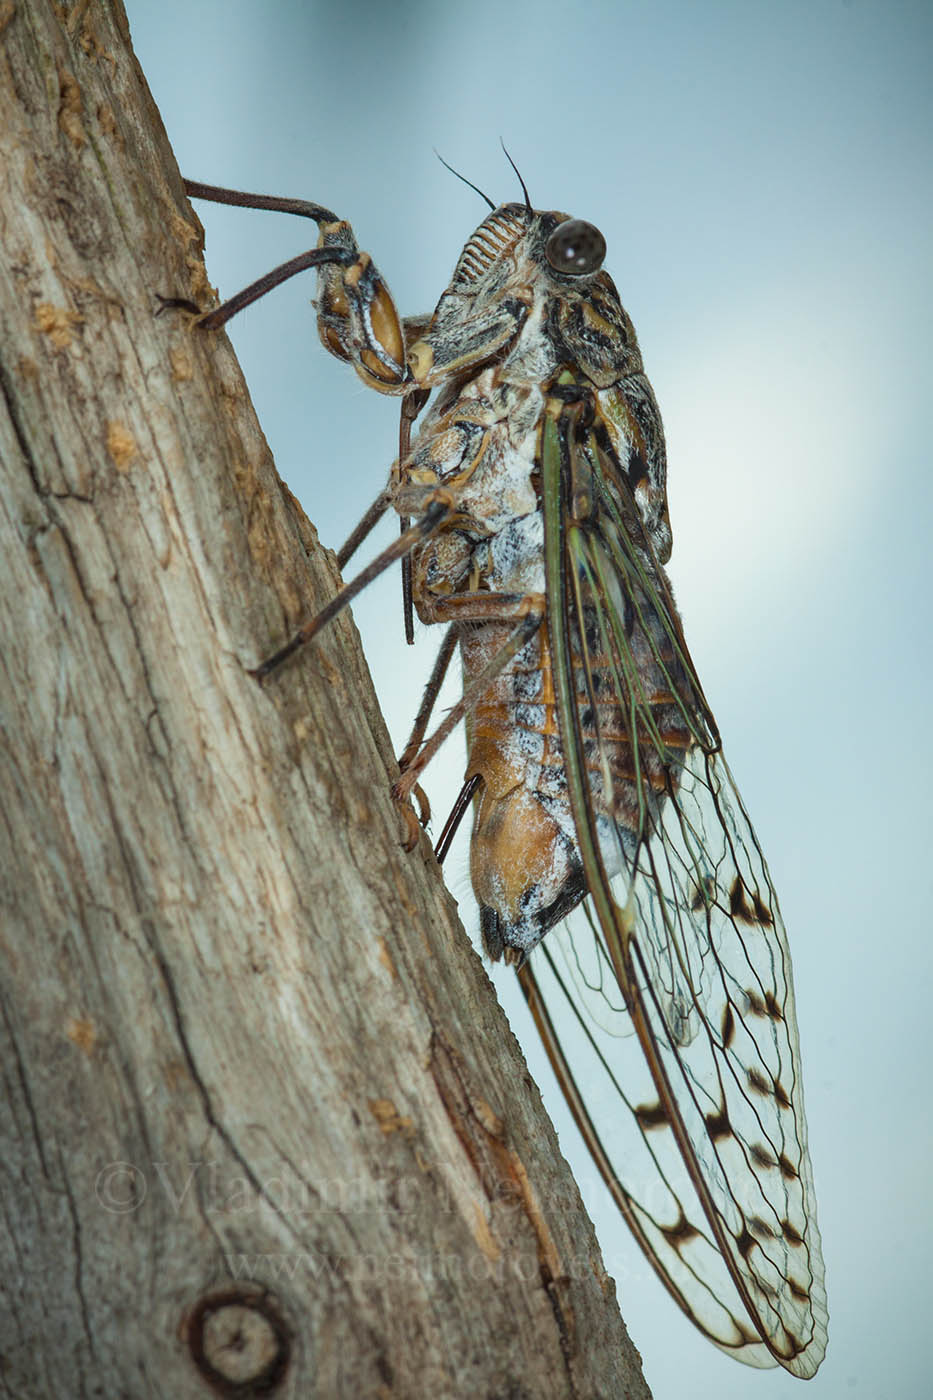 cicada orni, cicada, dzhankhot, krasnodar territorynorth west caucasus, northwestern caucasus, russia, insect, insecta, animals, hemiptera, cicadidae, female, vertical frame, macro, nature, oviposition, egg-laying, burck, tree trunk, trunk, wood, Владимир Нейморовец